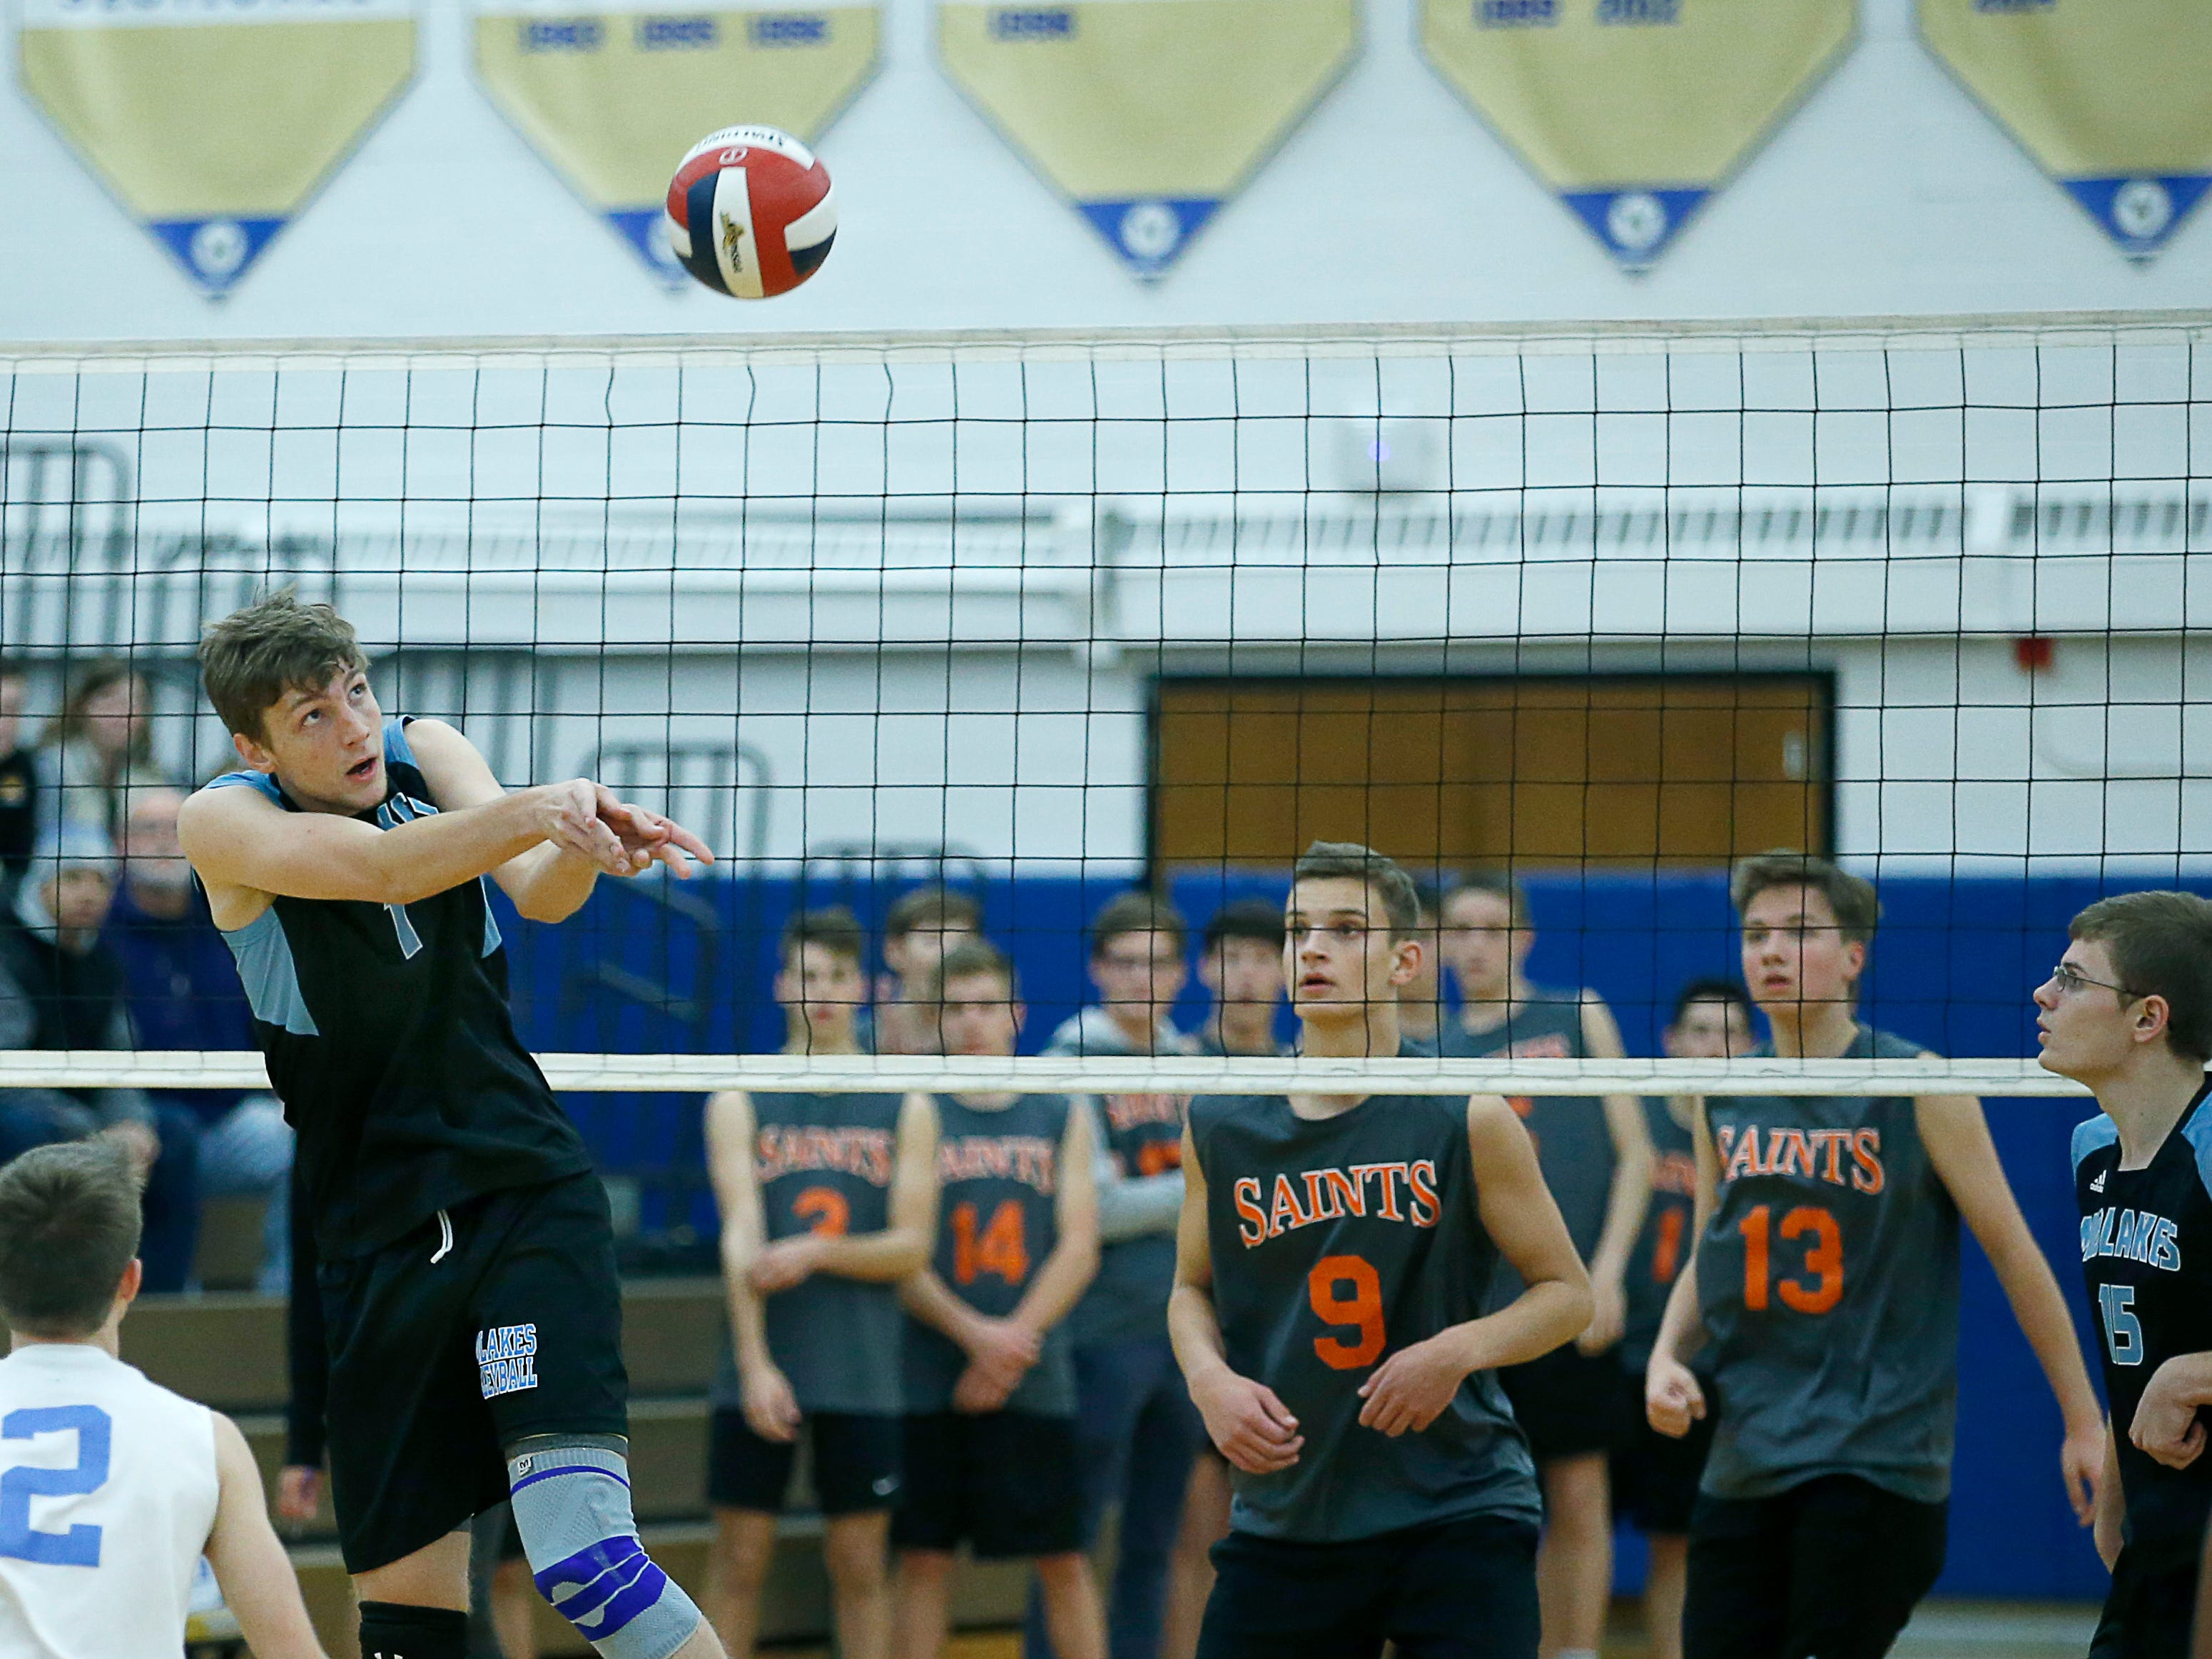 Class B volleyball final: Midlakes' Ben Jansen sets up against Churchville-Chili in the first set at Webster Schroeder High School.